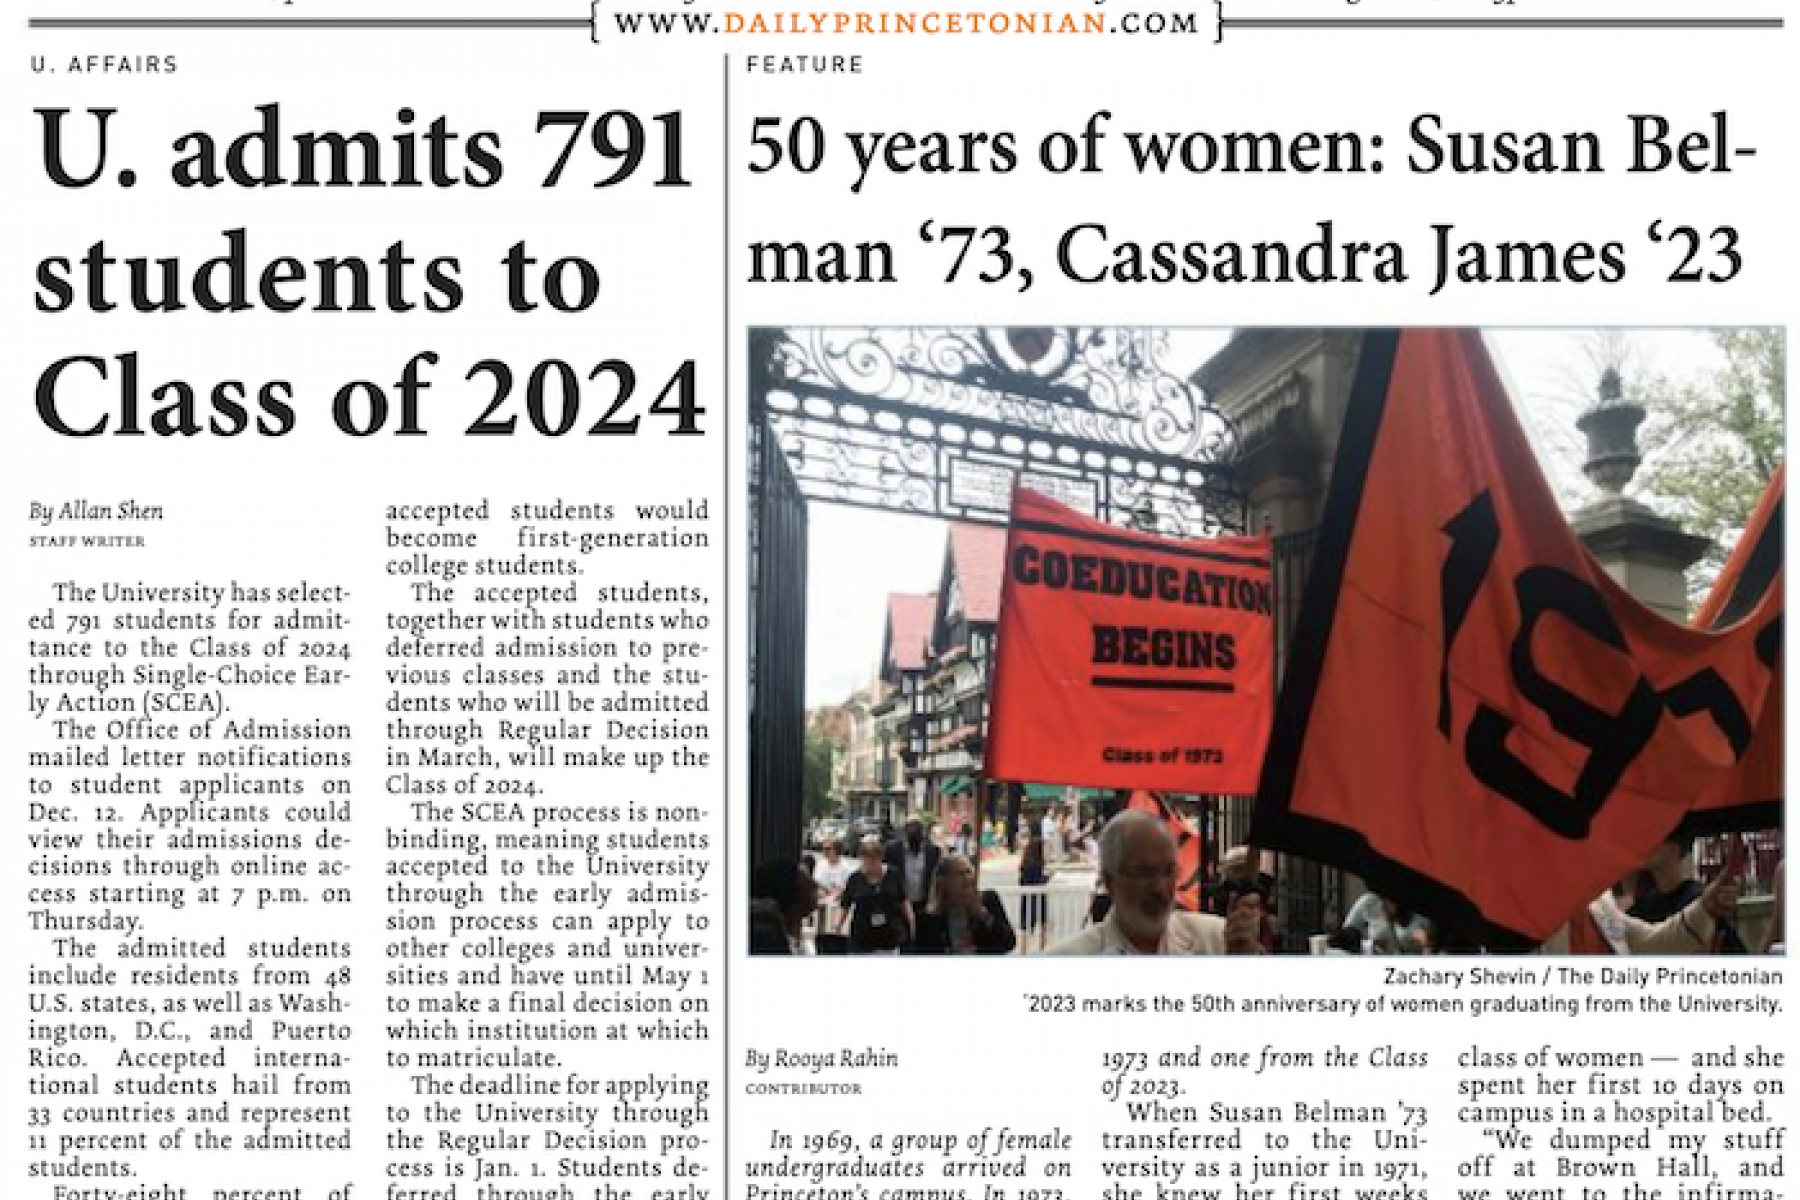 Cover of the Daily Princetonian with an article about 791 students admitted early action to Class of 2024 and a feature on 50 years of women at Princeton